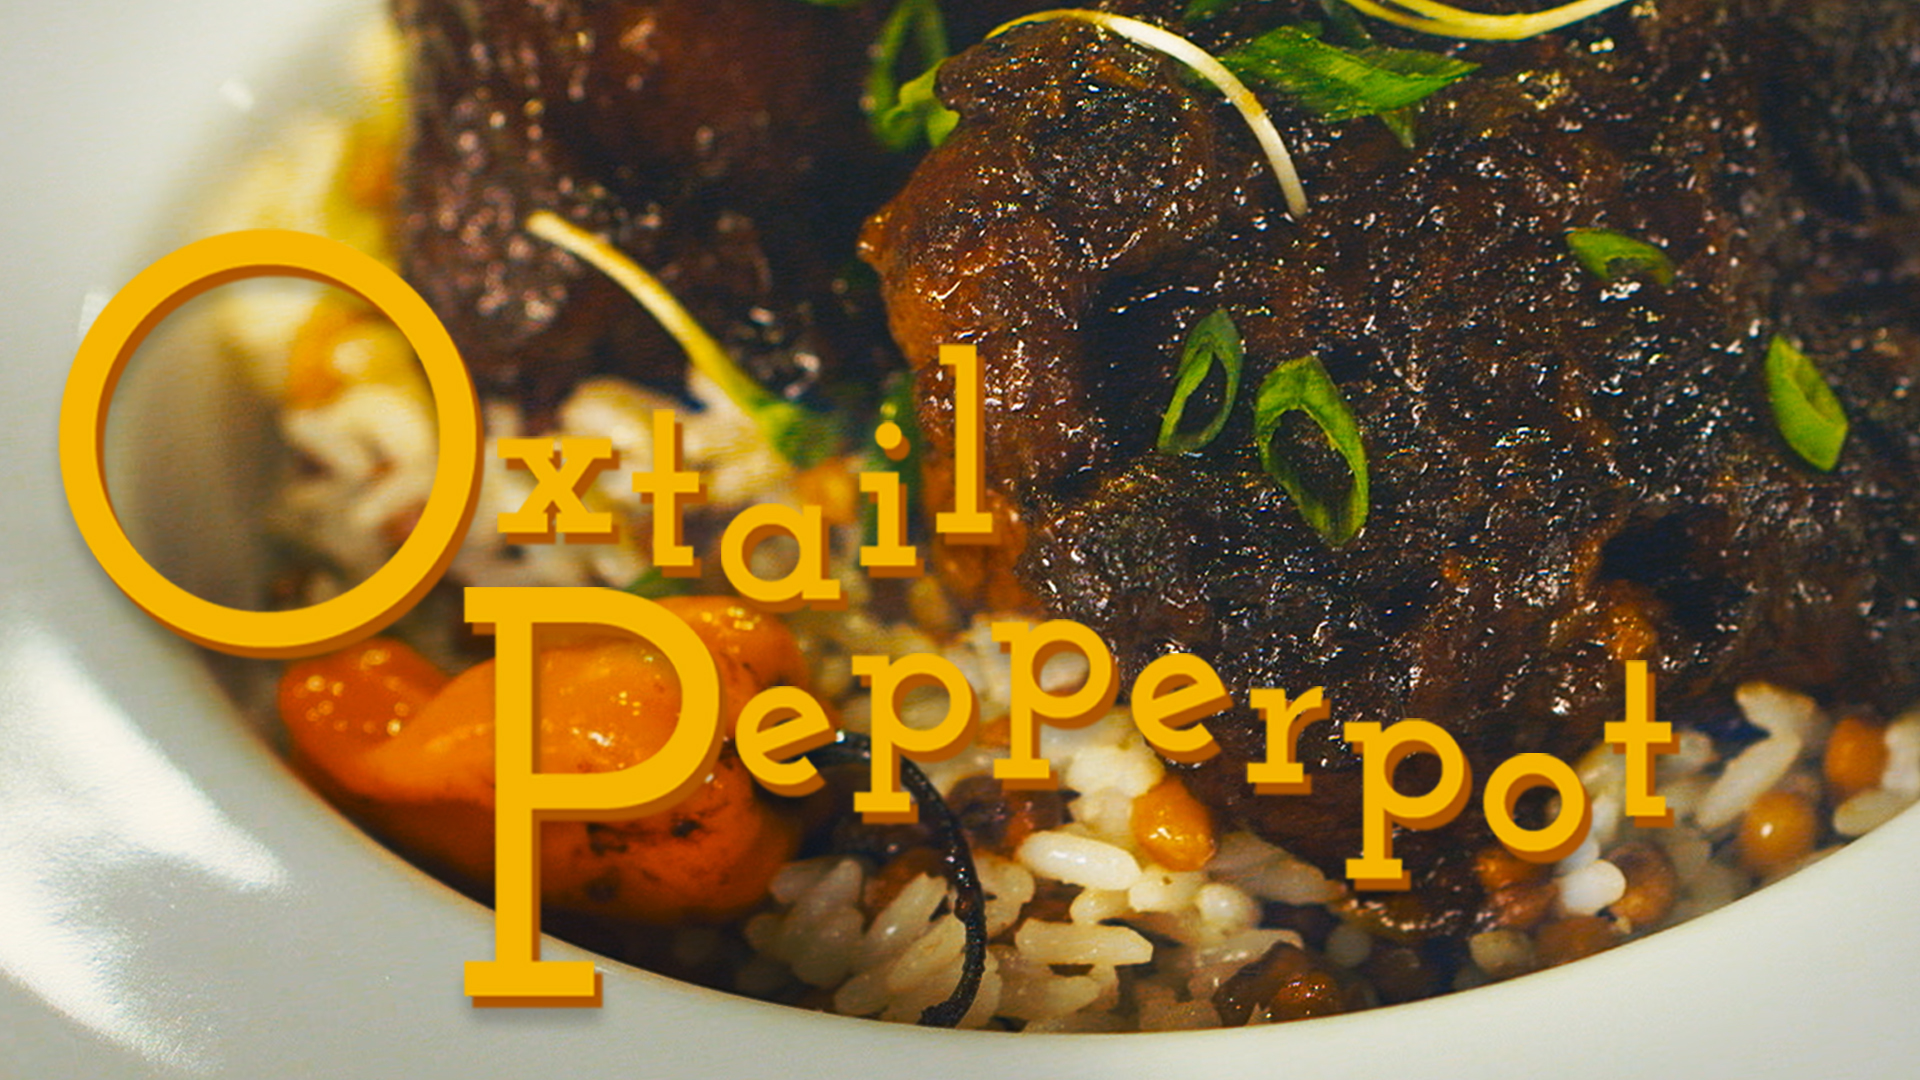 Jerome Grant's Museum-Worthy Oxtail Pepperpot